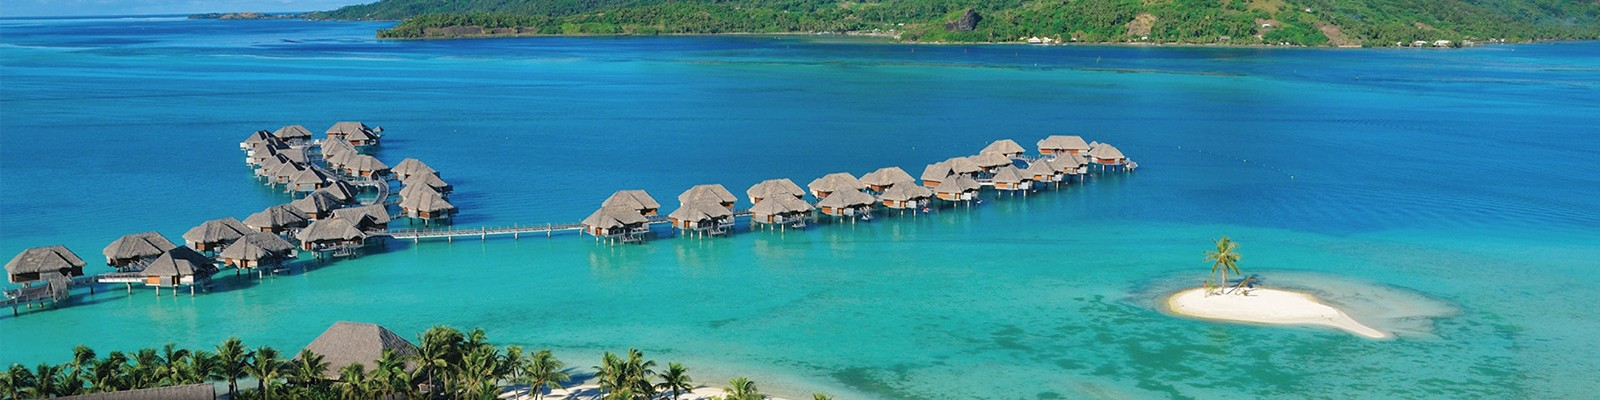 bora bora honeymoons header image